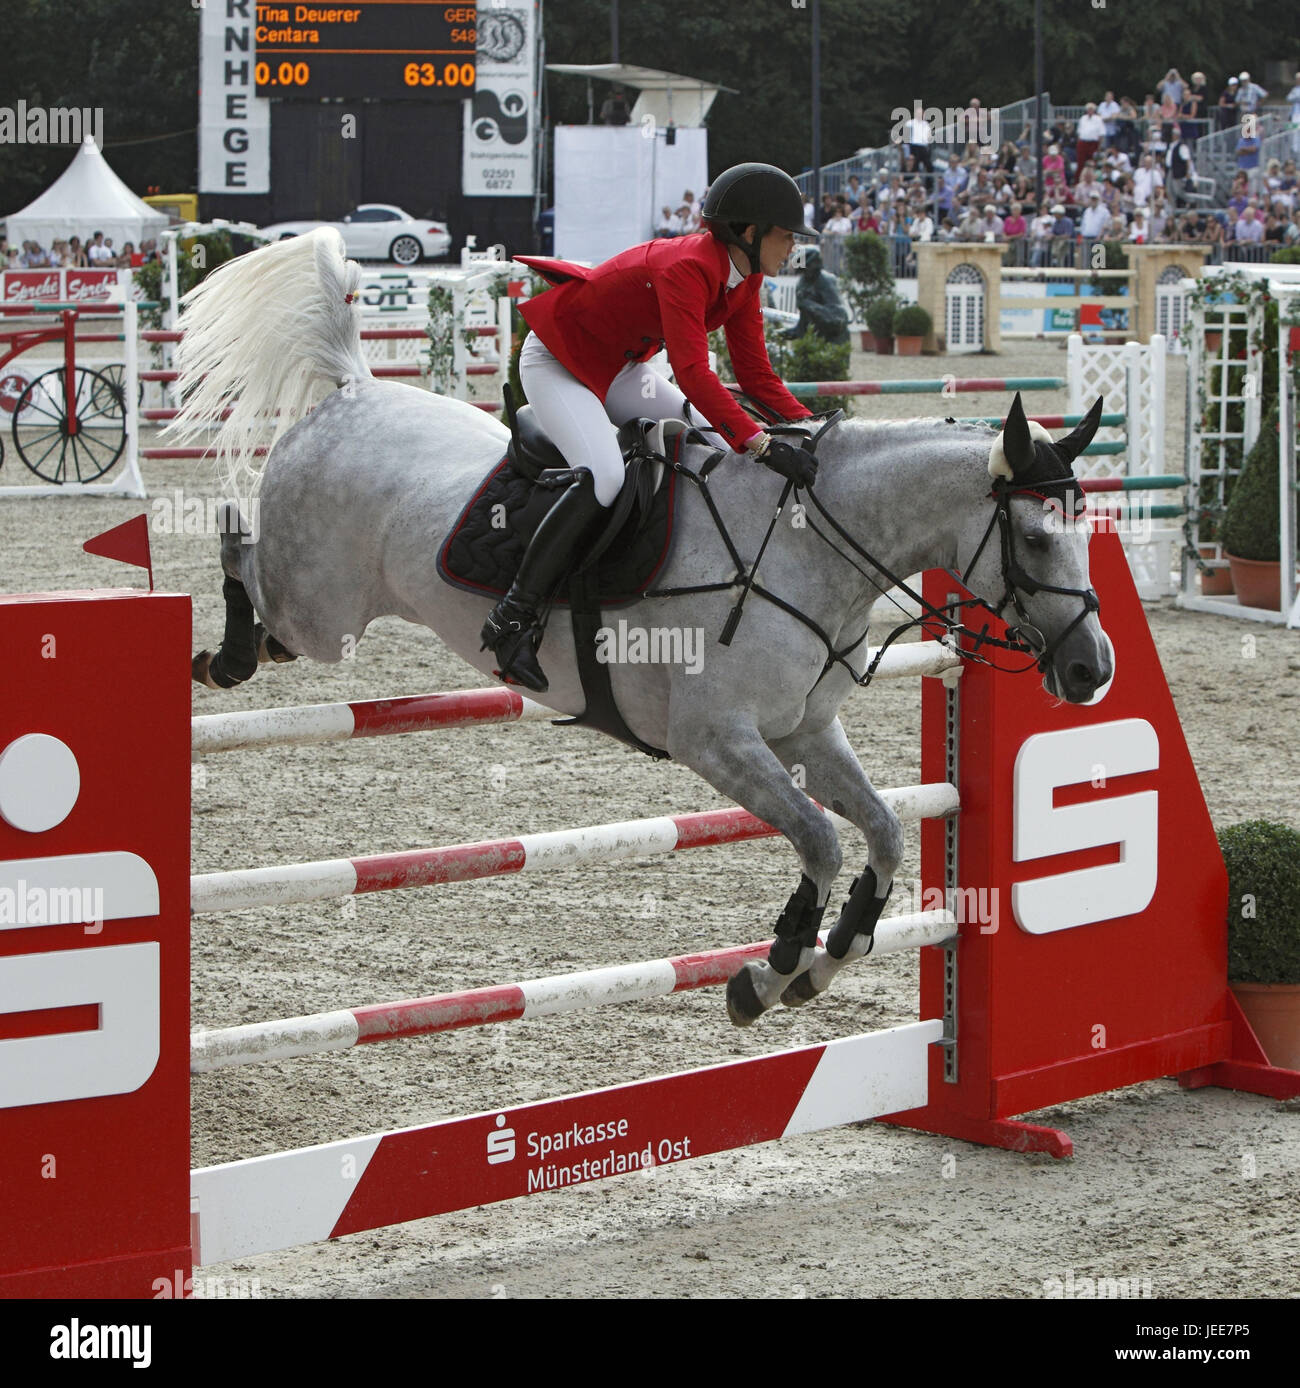 Horse-racing, German championships jumping and training in 2010 in Münster, Springreiterinnen, Tina Deuerer - Stock Image